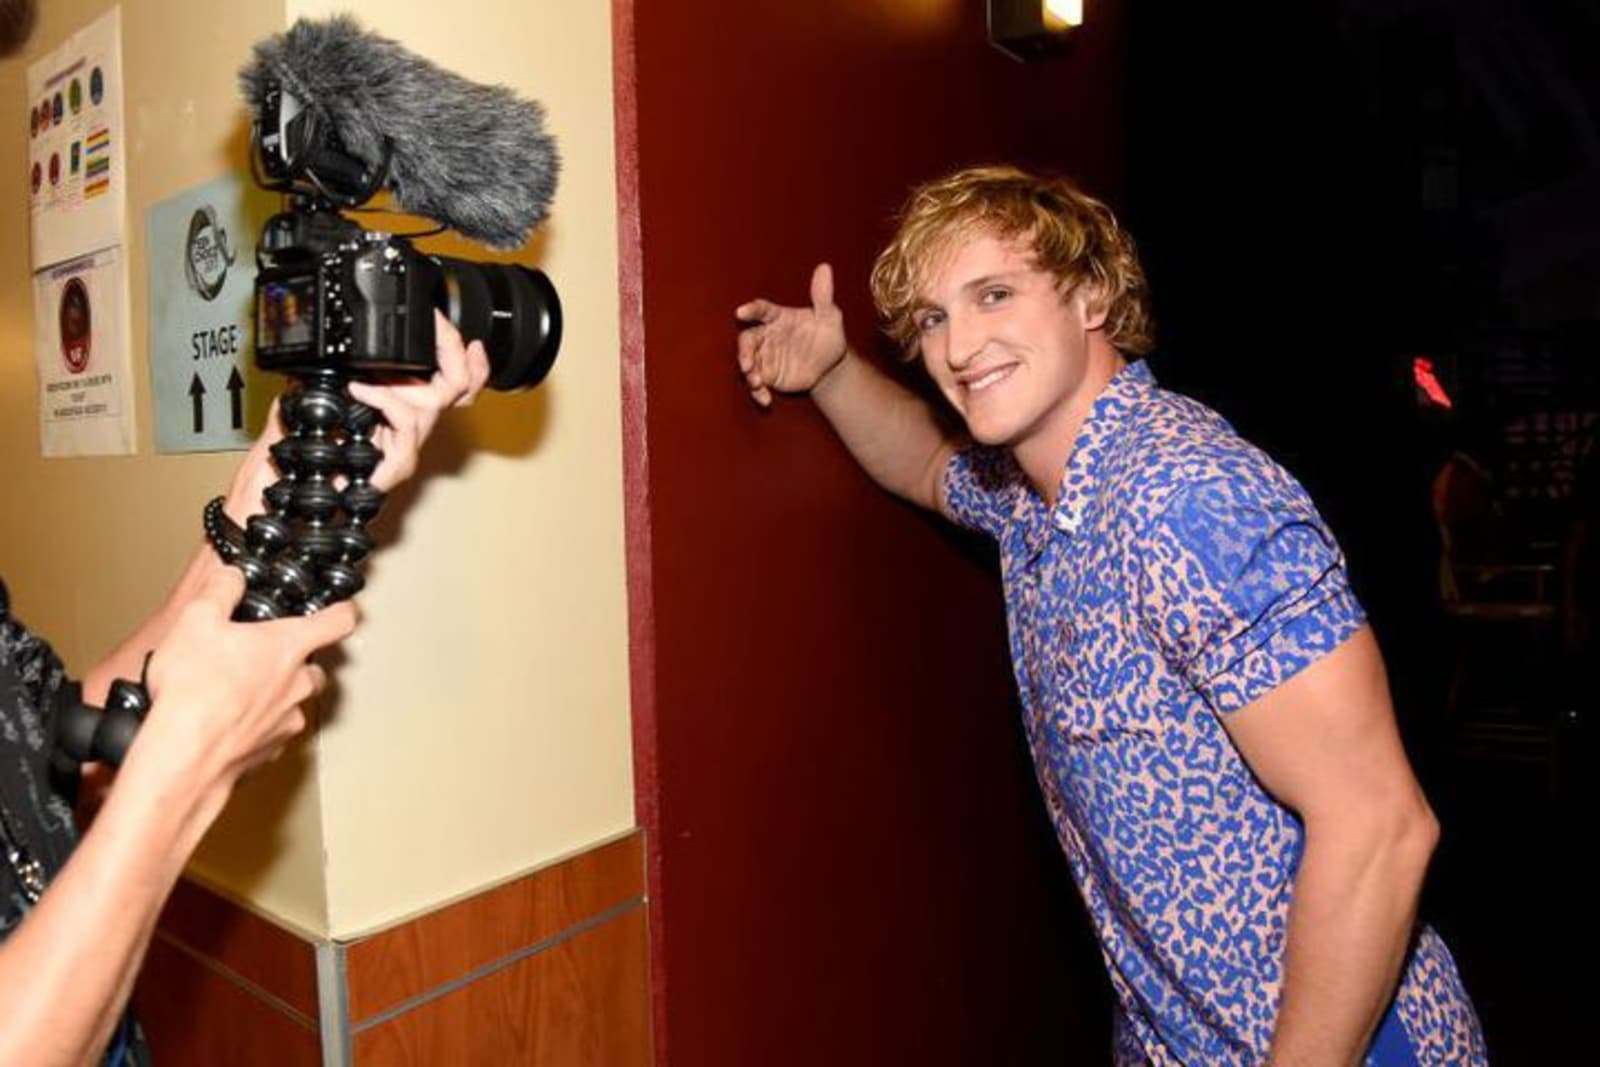 Logan Paul has ads restored on YouTube videos, but he's not off the hook